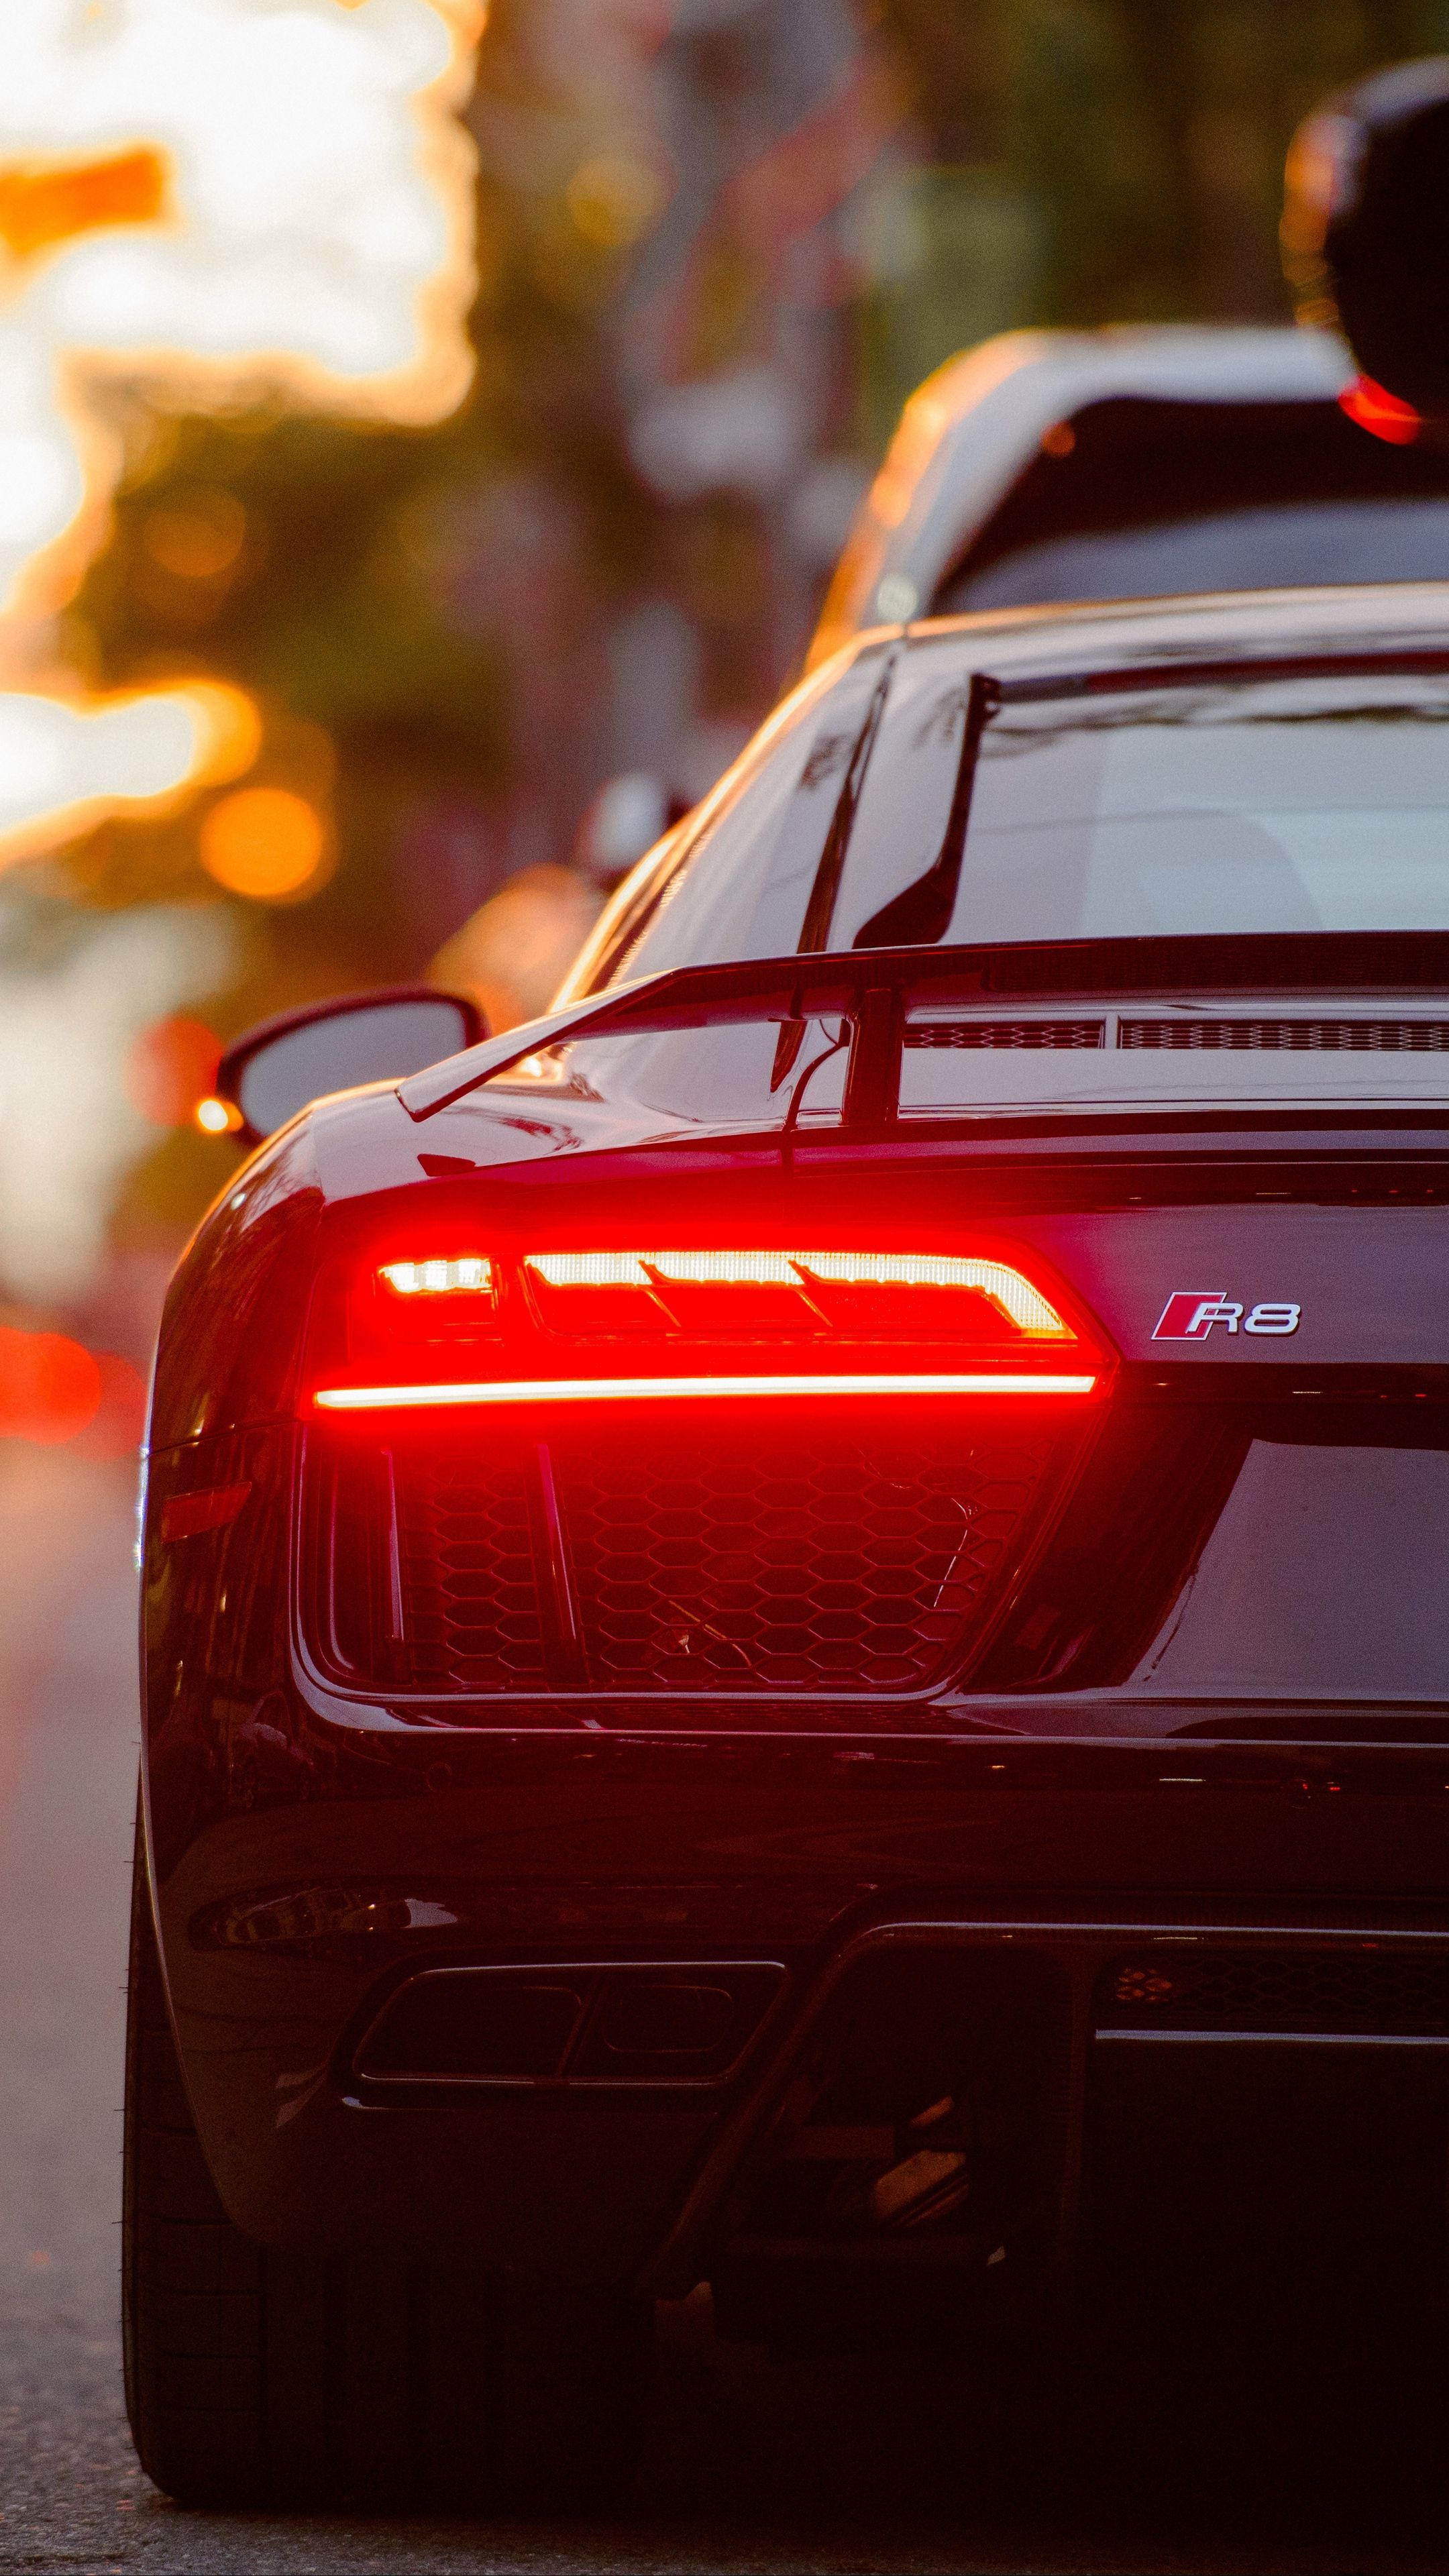 Just bought a new 4k ultra hd tv, but netflix isn't cooperating? Cars Auto Headlight Movement Wallpapers Hd 4k Background For Android Car Iphone Wallpaper Audi R8 Wallpaper Bmw Wallpapers